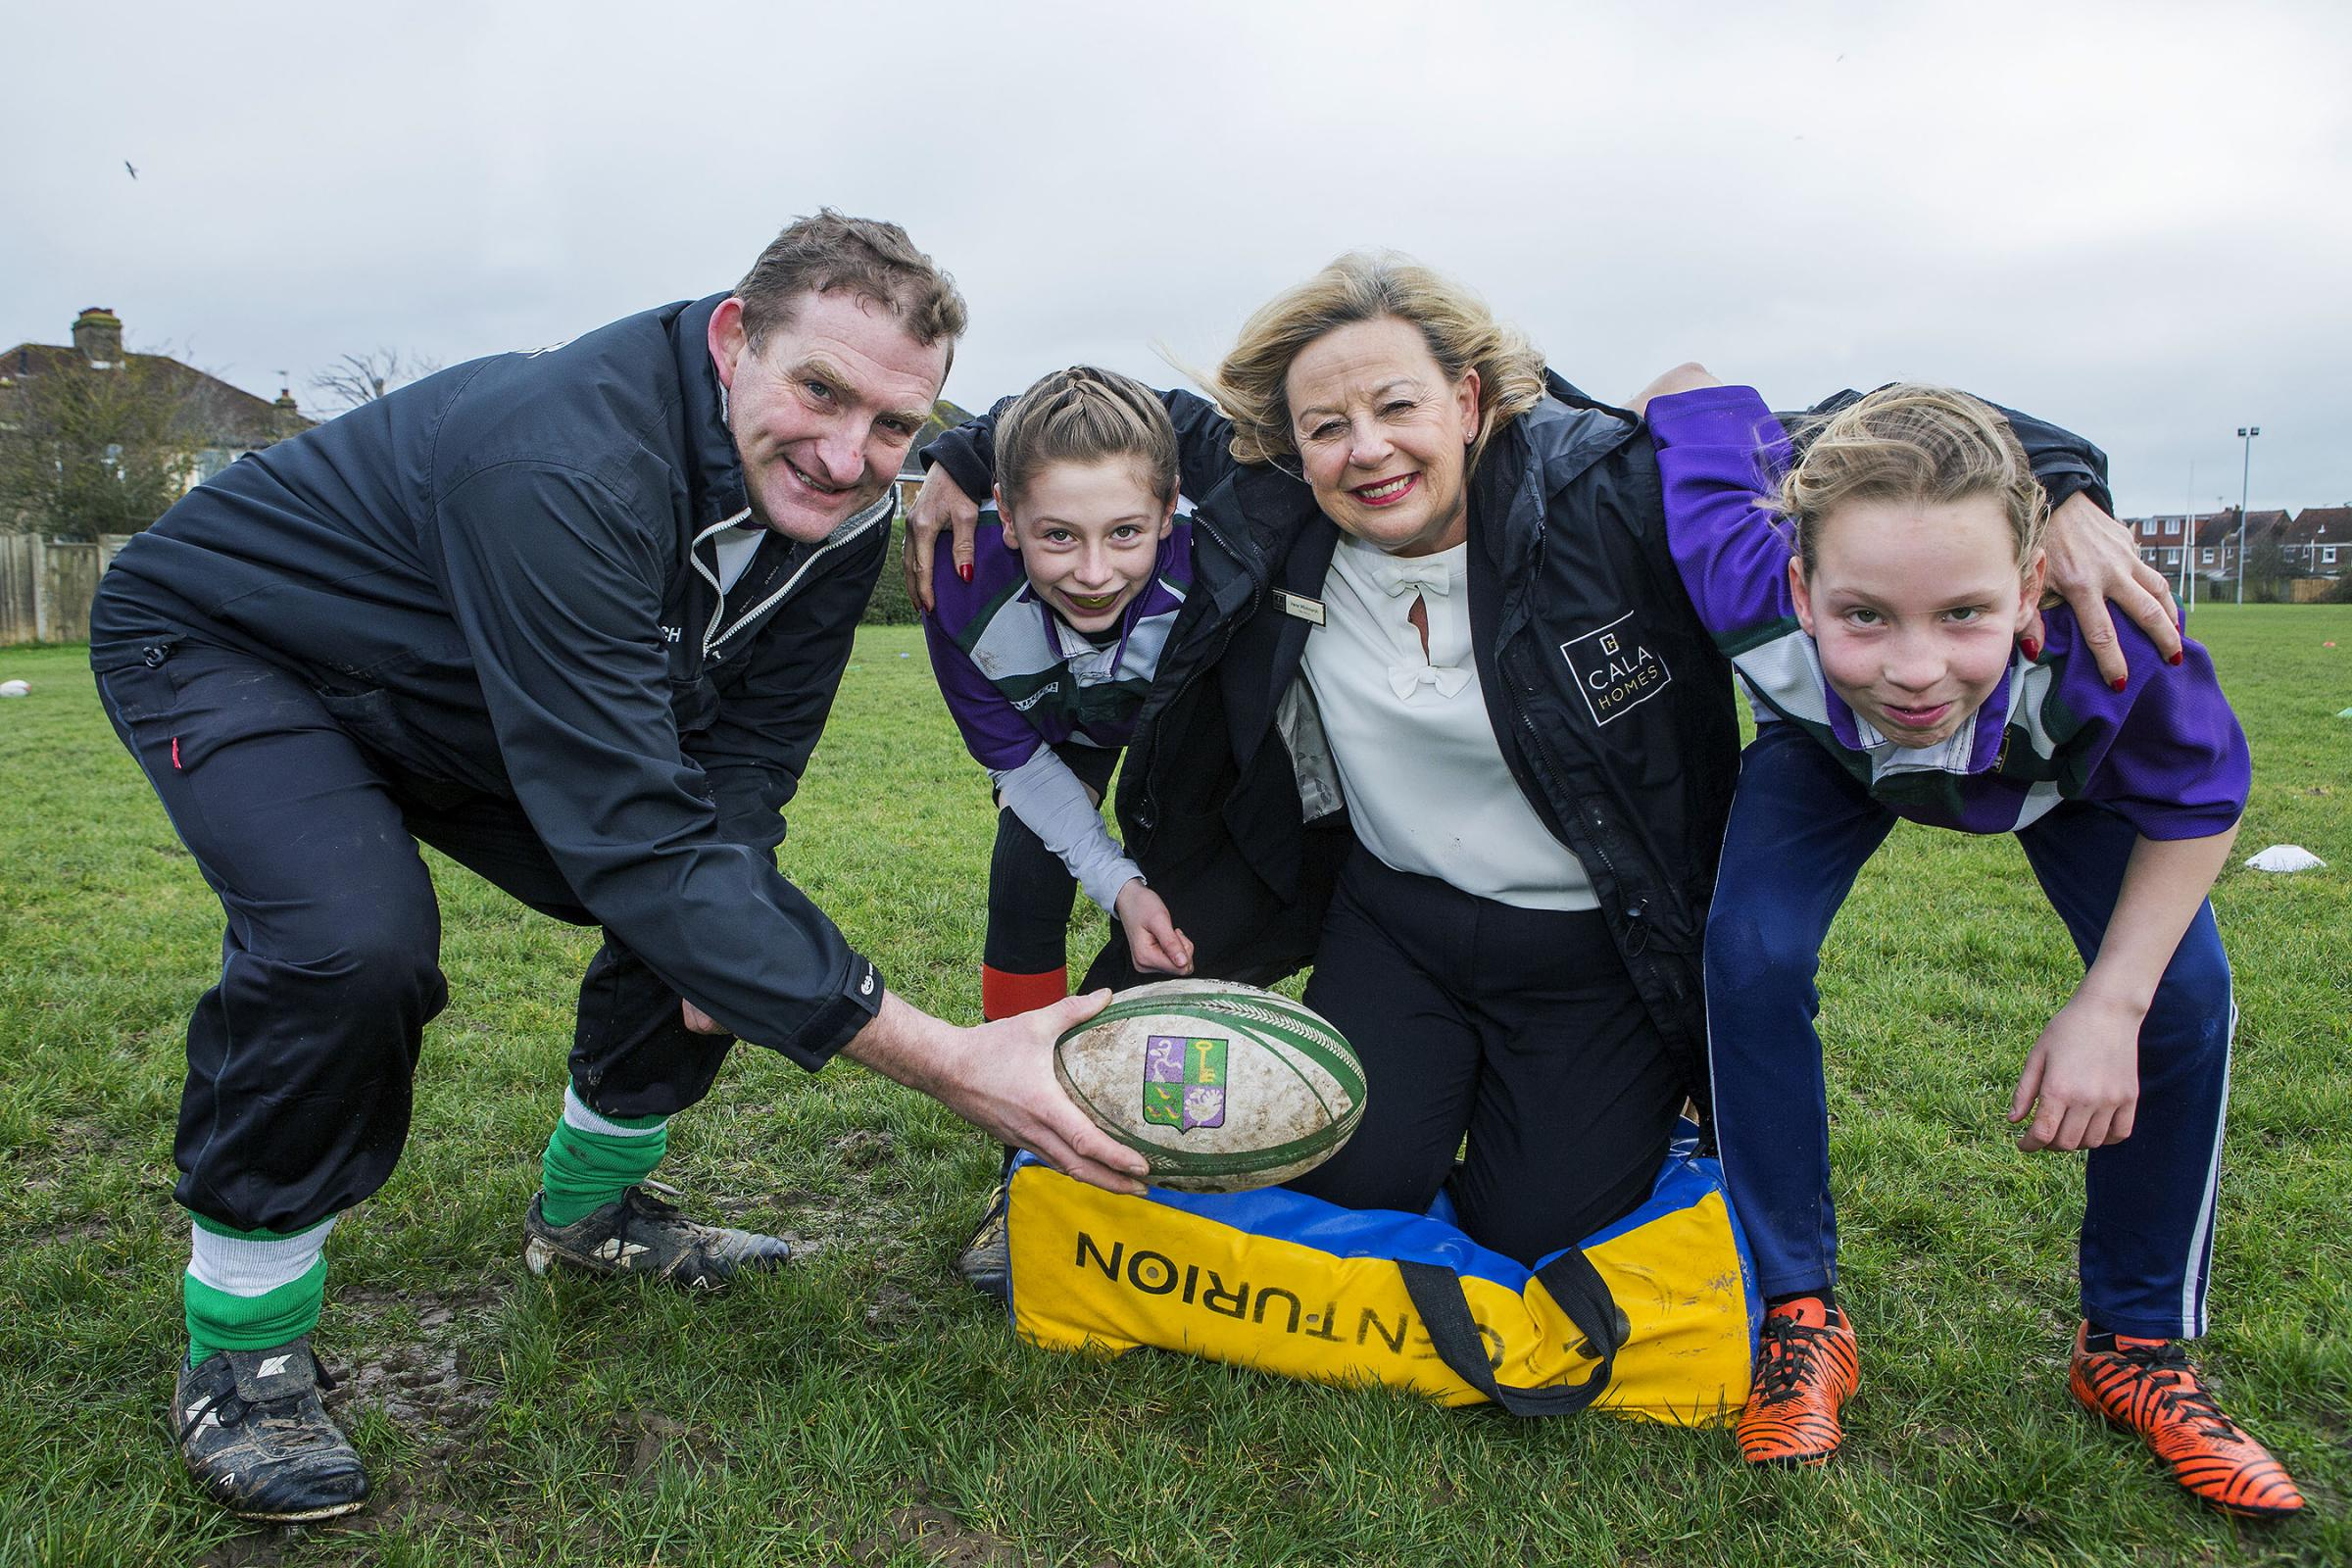 CALA Homes have donated money to Bognor Regis for Women's and Girls rugby facilities at the club. Irene Whitmarsh from CALA Homes seen here (centre) in a scrum with Steve Parsons and girls from the team Grace Callaway (left) and Lily Smith